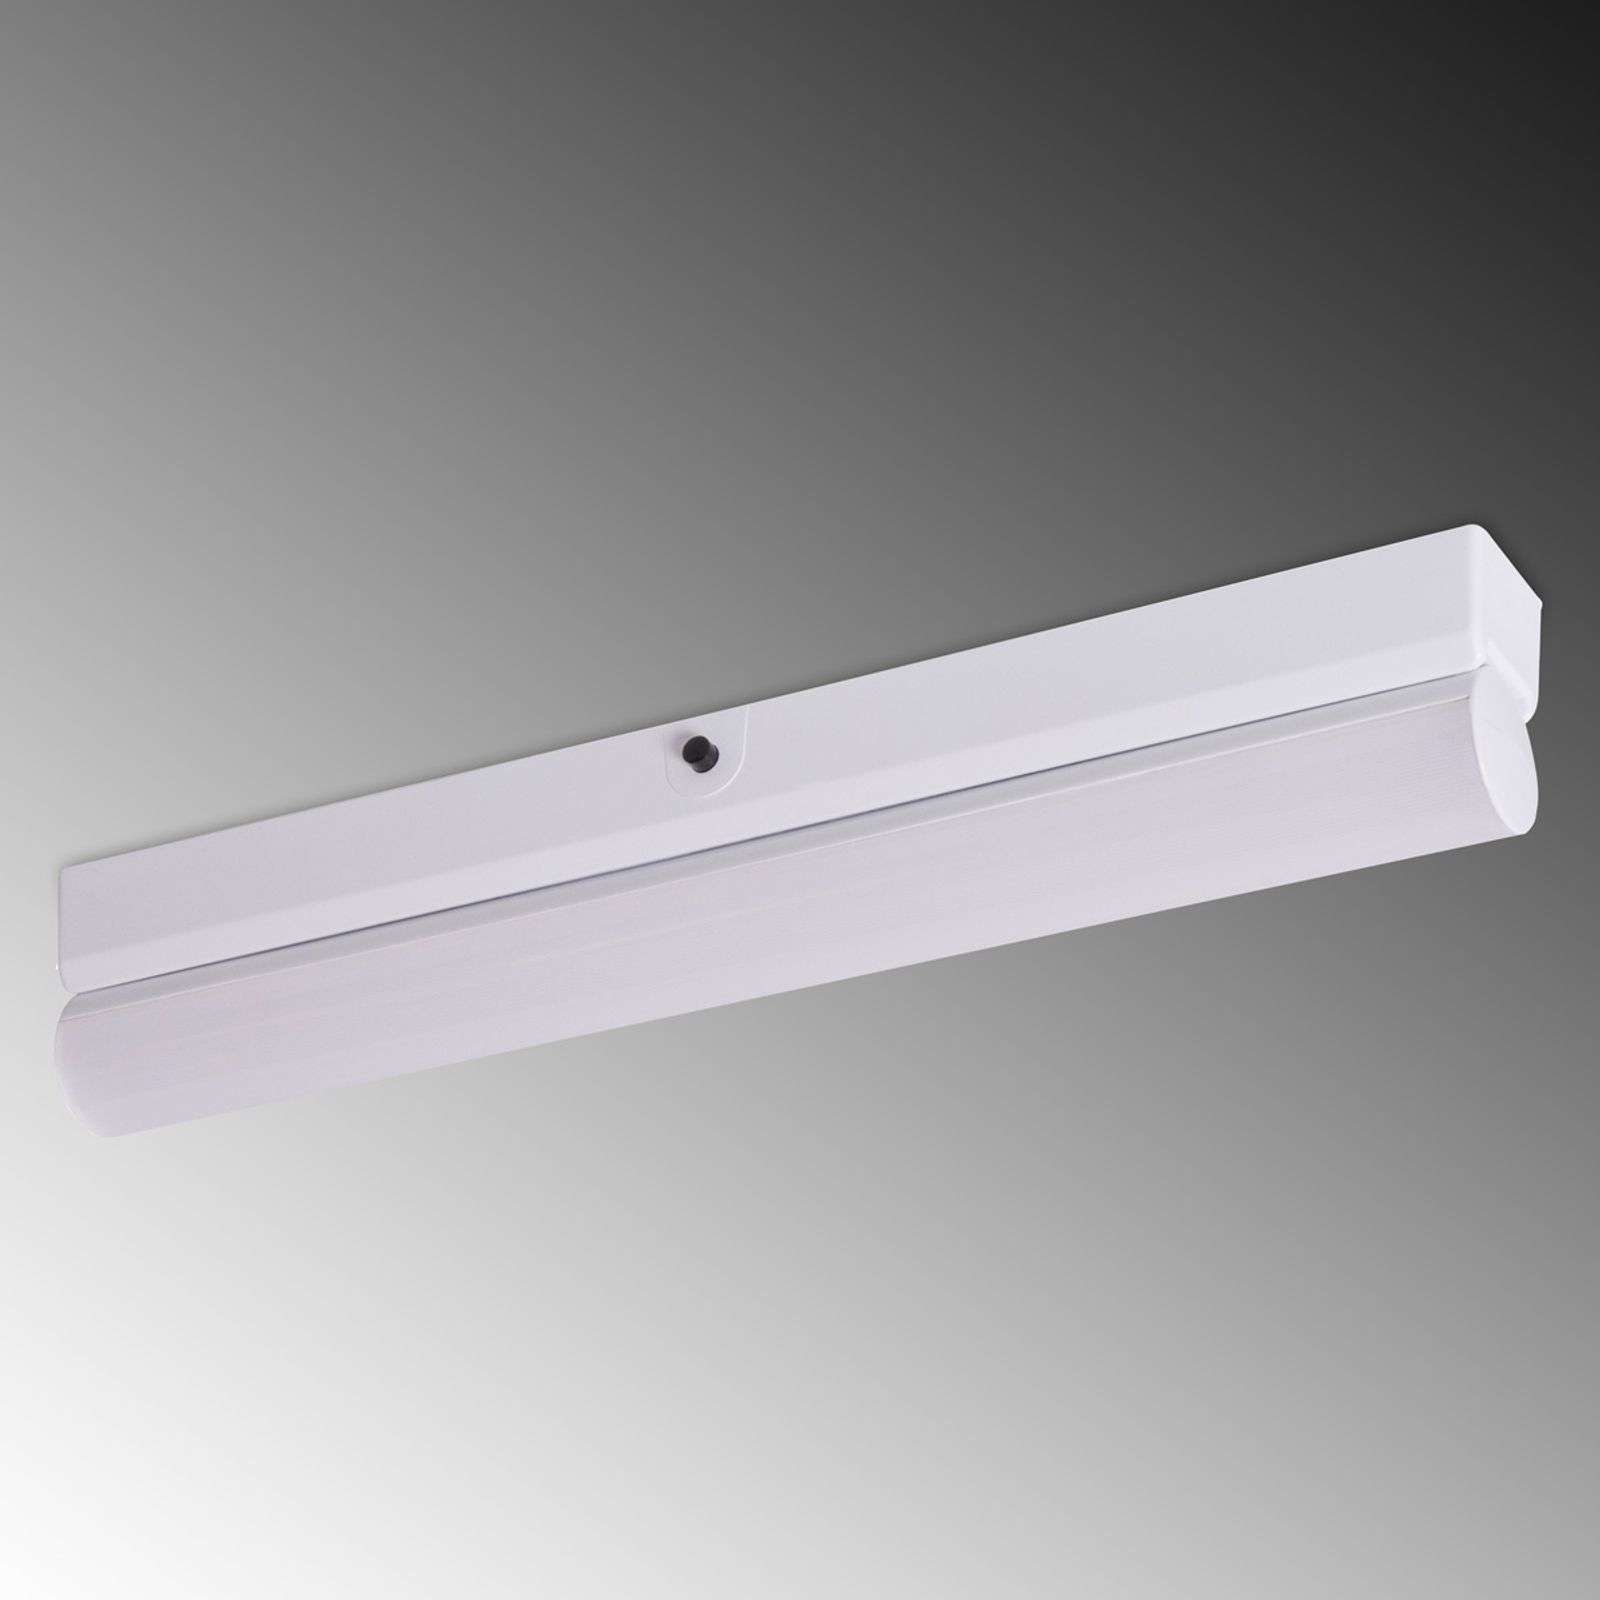 Star LED Combi under-cabinet light